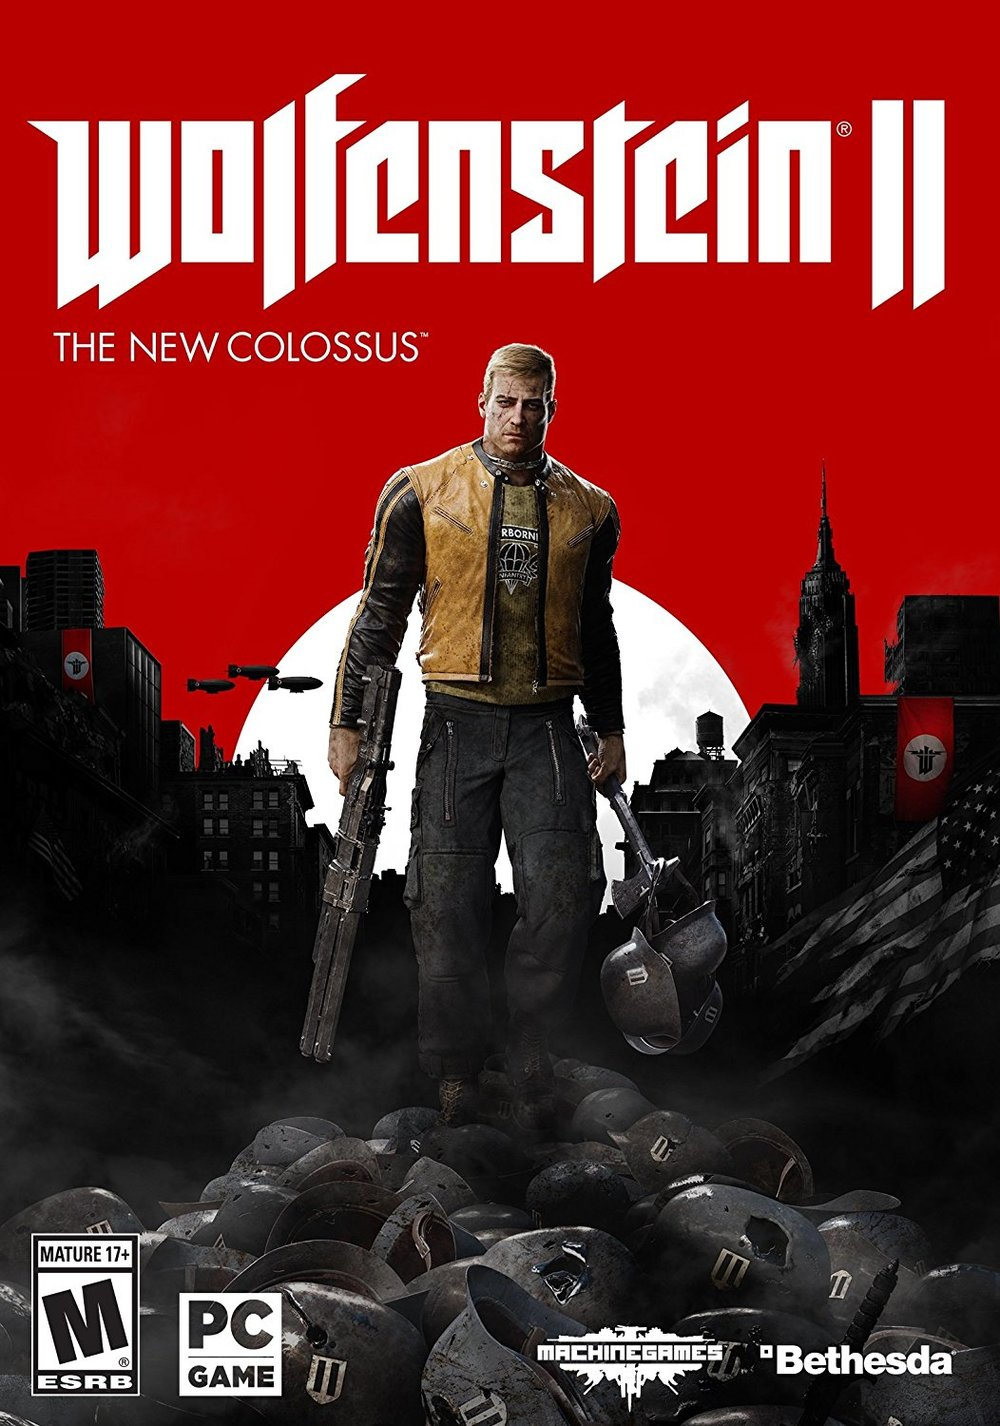 Wolfenstein II: The New Colossus - PC - - $19.99 - $20 off or 50%